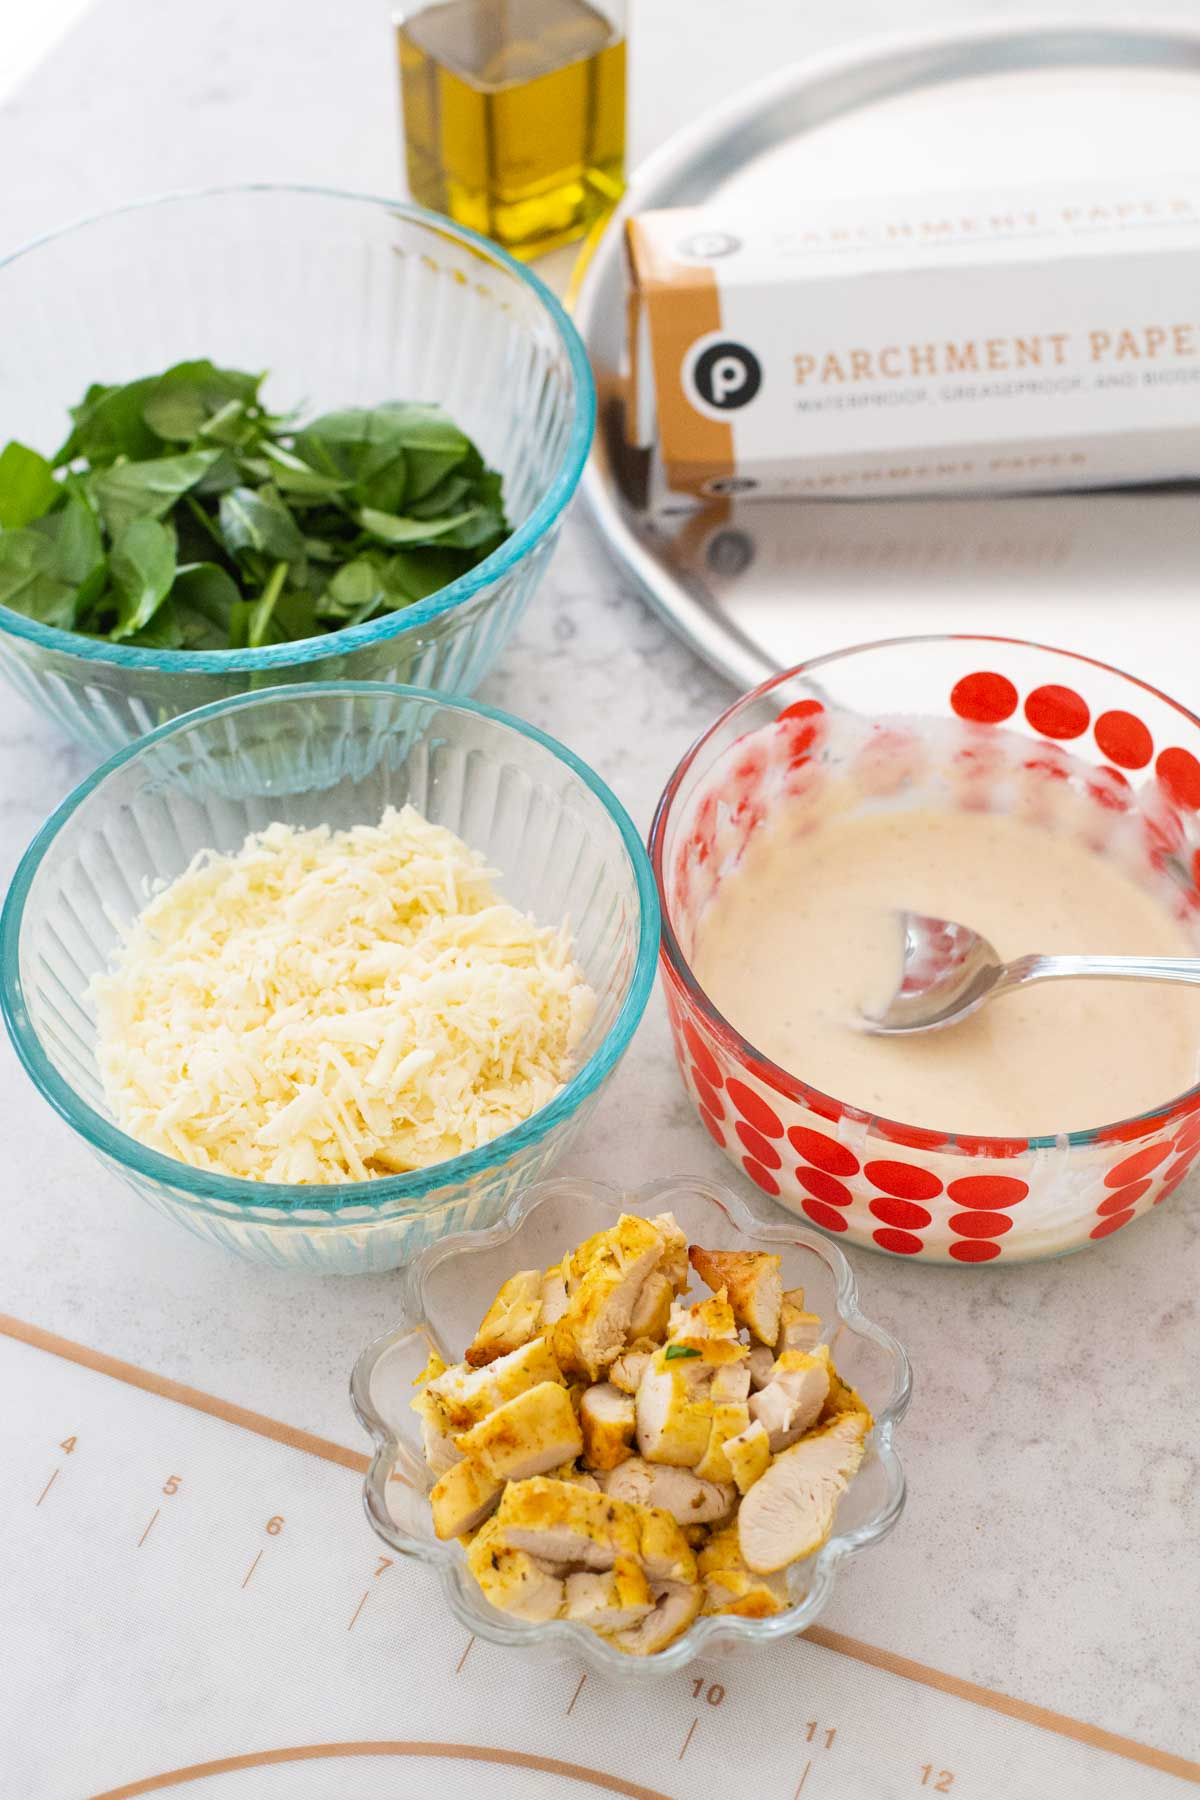 The ingredients for a homemade chicken spinach alfredo pizza are on the counter: a bowl of spinach, shredded cheese, chopped chicken, and homemade alfredo sauce.